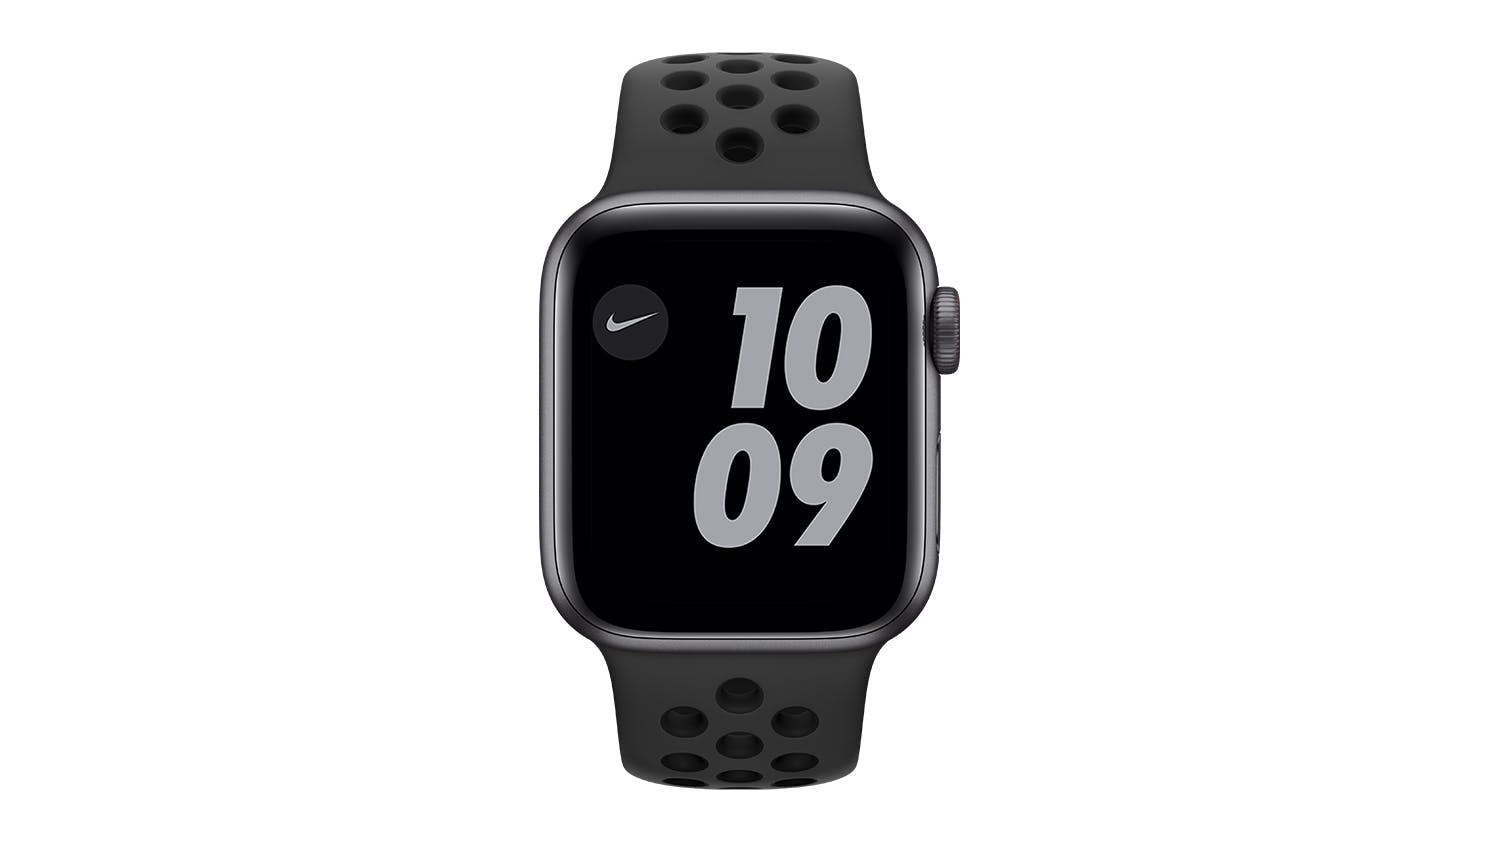 Apple Watch Nike SE (GPS+Cellular) 40mm Space Grey Aluminium Case with Anthracite/Black Nike Sport Band